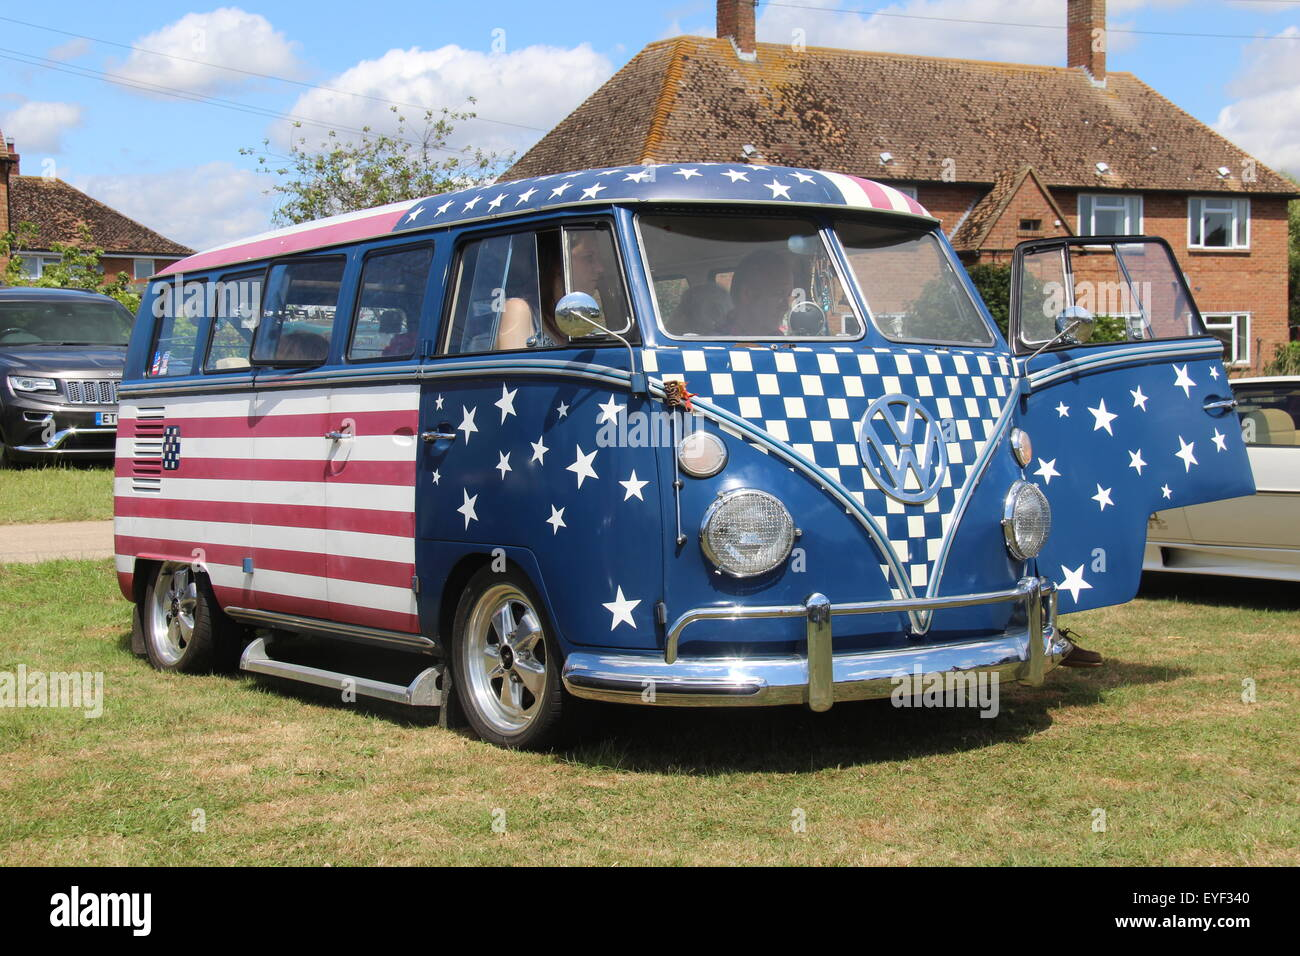 A VINTAGE VW VOLKSWAGEN SPLIT-SCREEN CAMPER VAN BUS IN AMERICAN USA FLAG COLOURS AT A VINTAGE SHOW IN THE UK - Stock Image